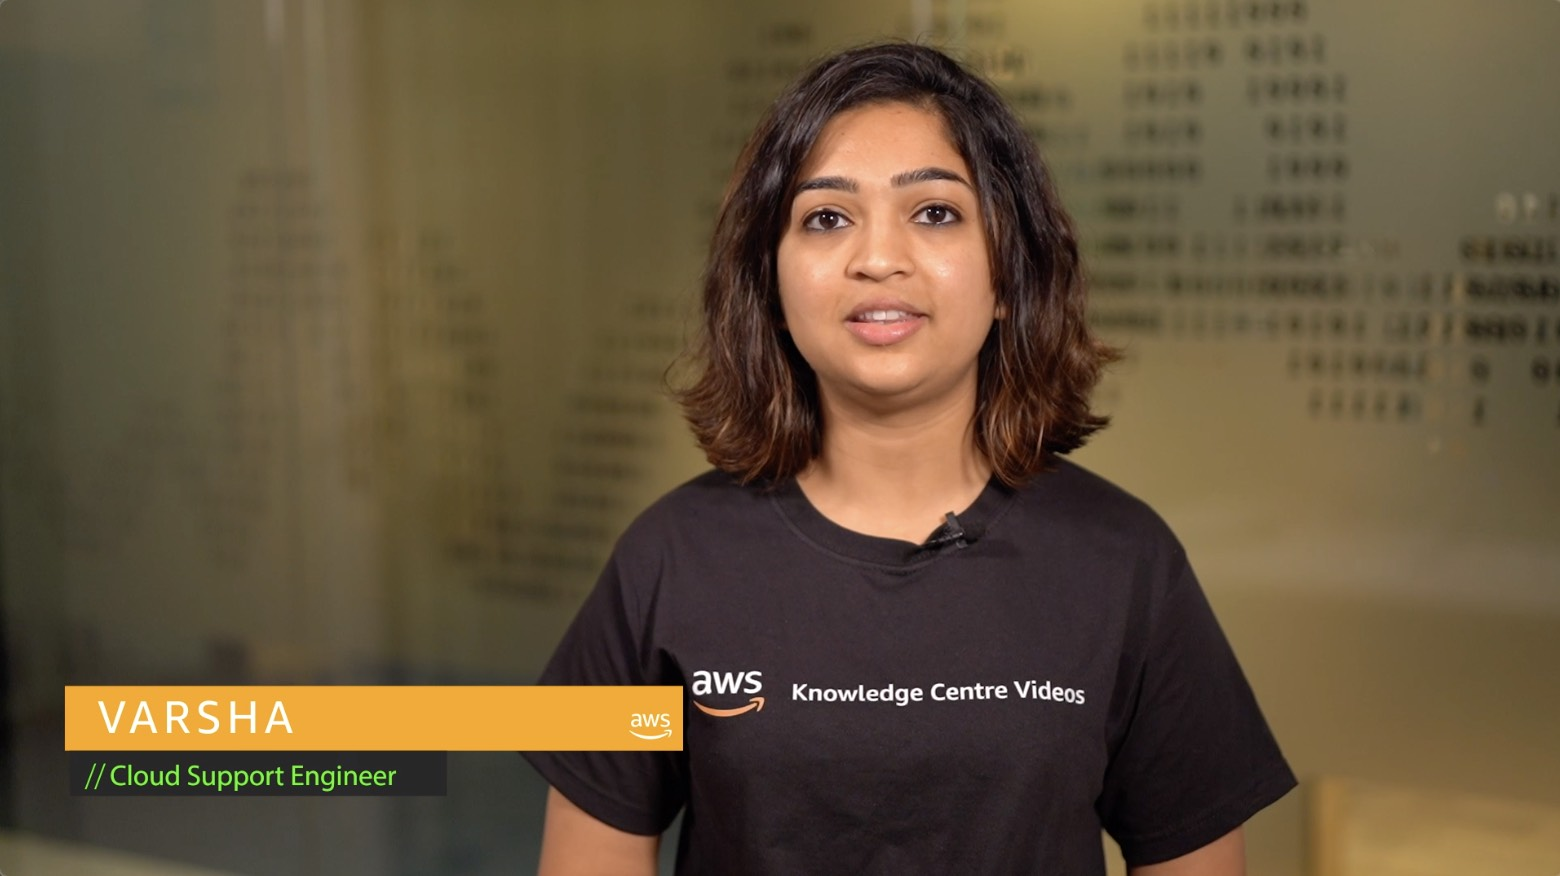 Watch Varsha's video to learn more